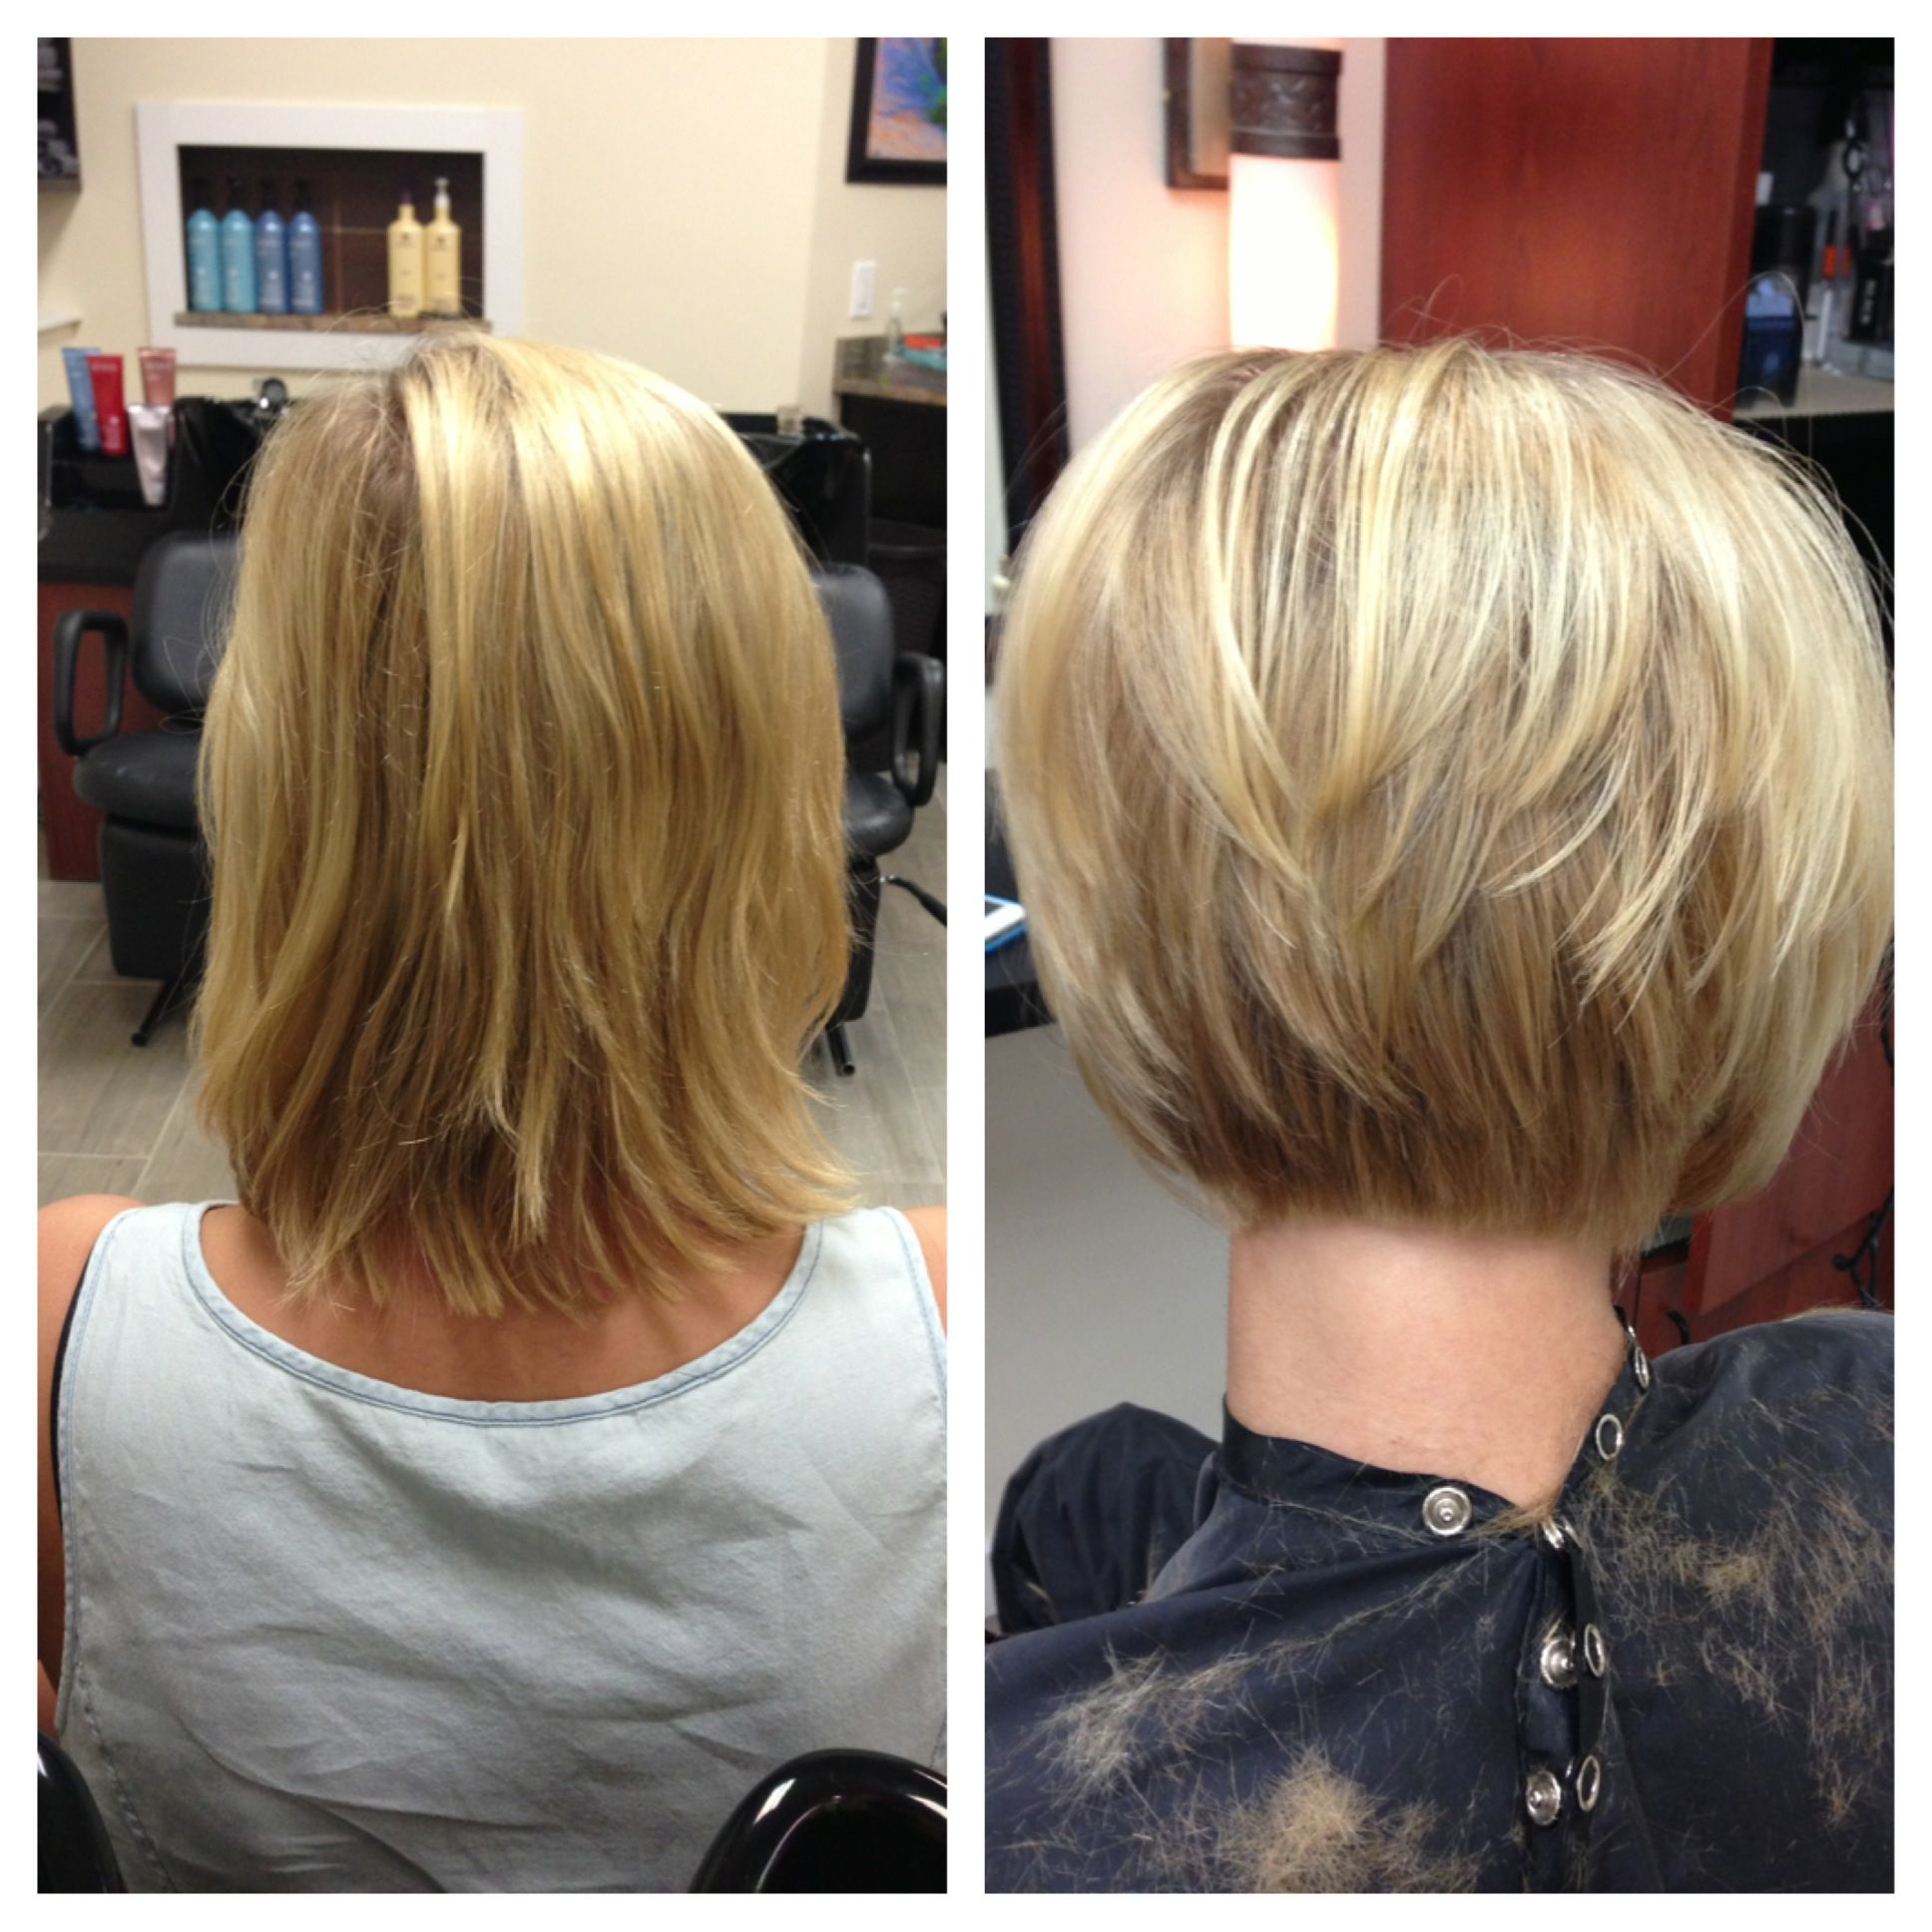 Before and after haircut! | Niki Nachodsky | Pinterest ...